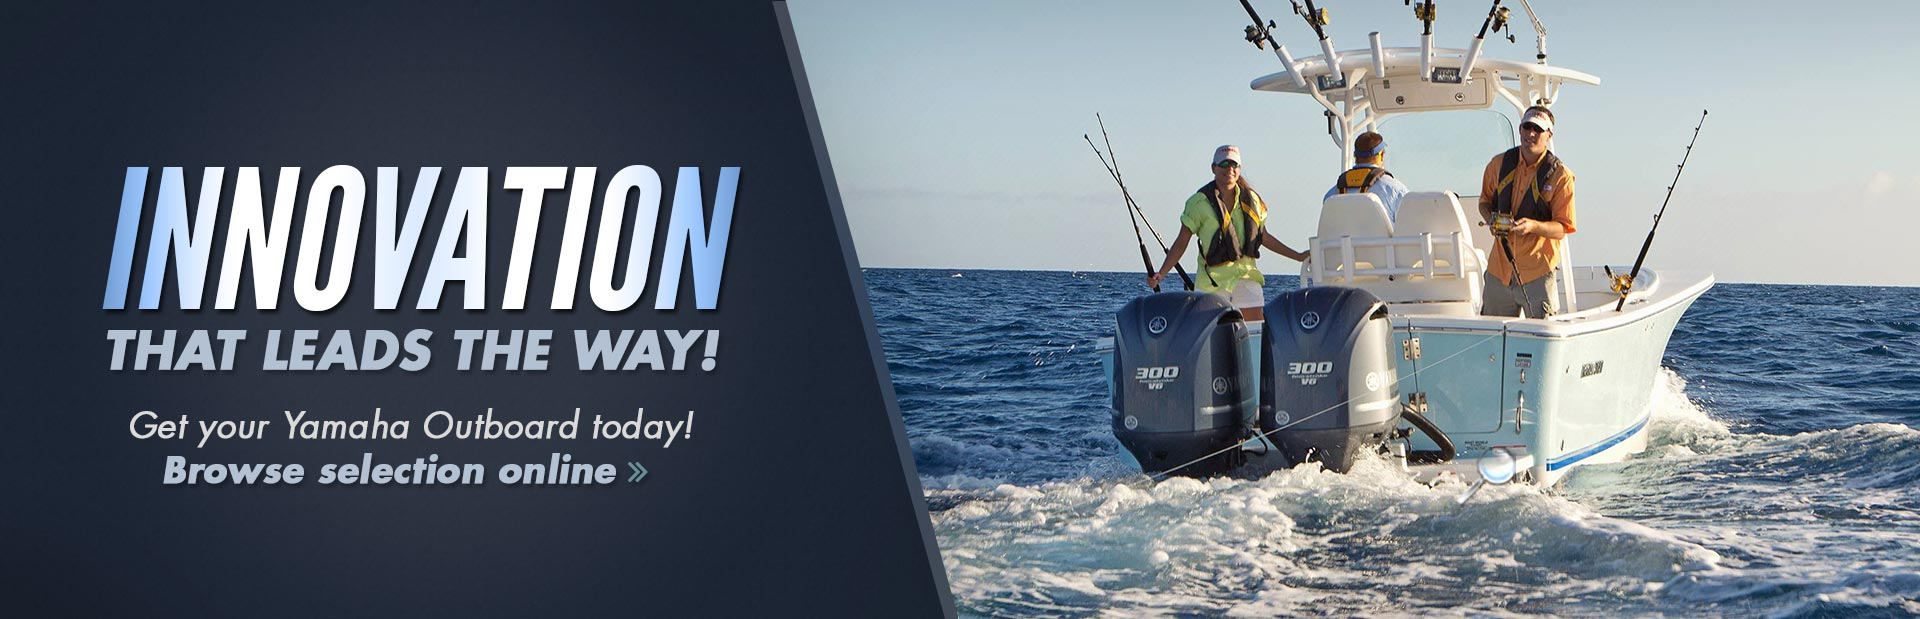 Click here to browse our selection of Yamaha outboards!